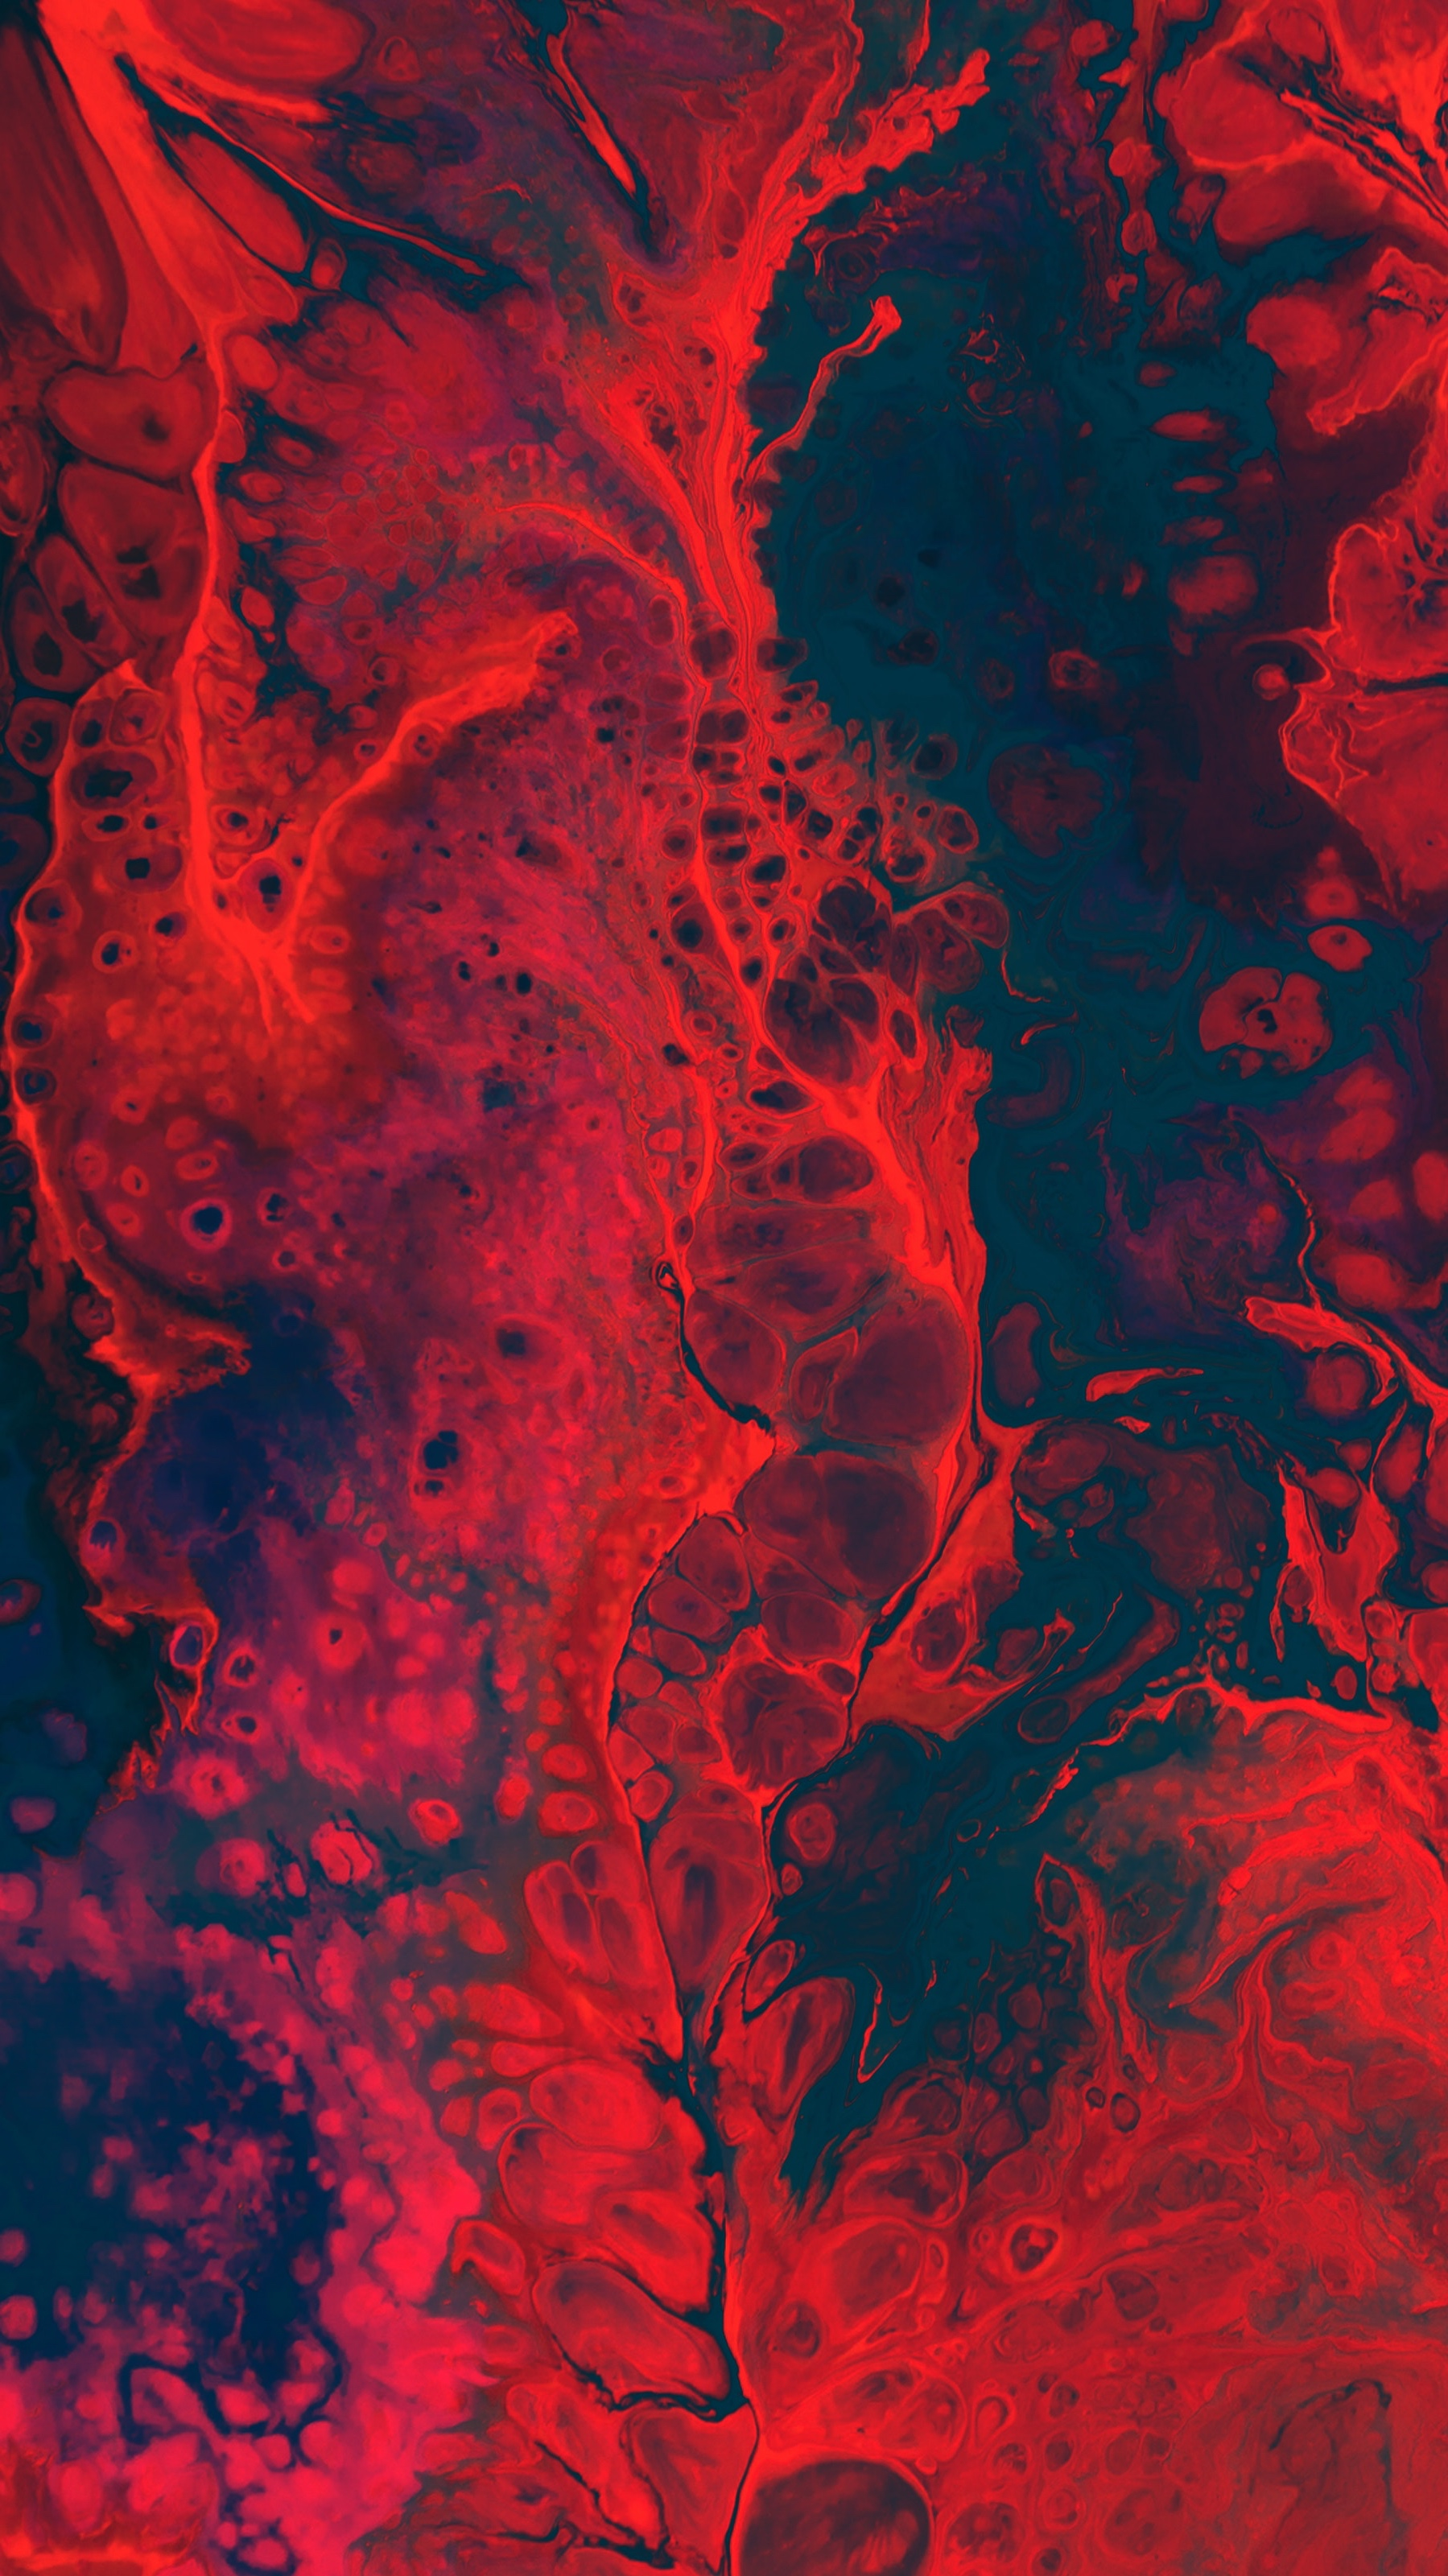 111176 Screensavers and Wallpapers Liquid for phone. Download Macro, Texture, Textures, Paint, Liquid, Stains, Spots pictures for free